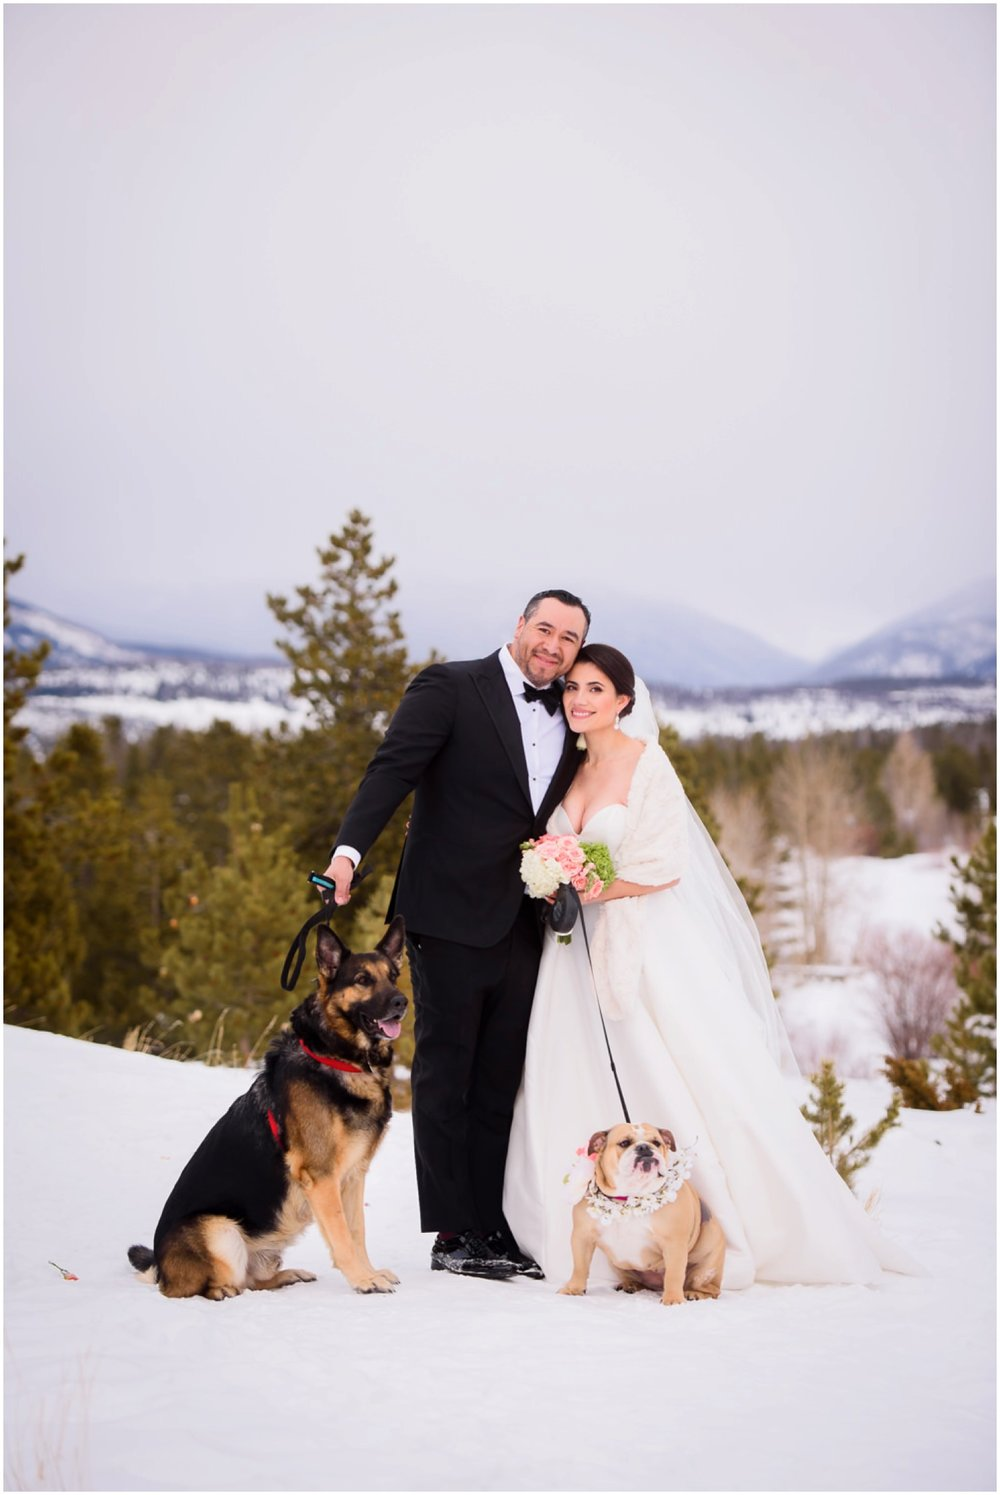 Bride and Groom with dogs winter wedding